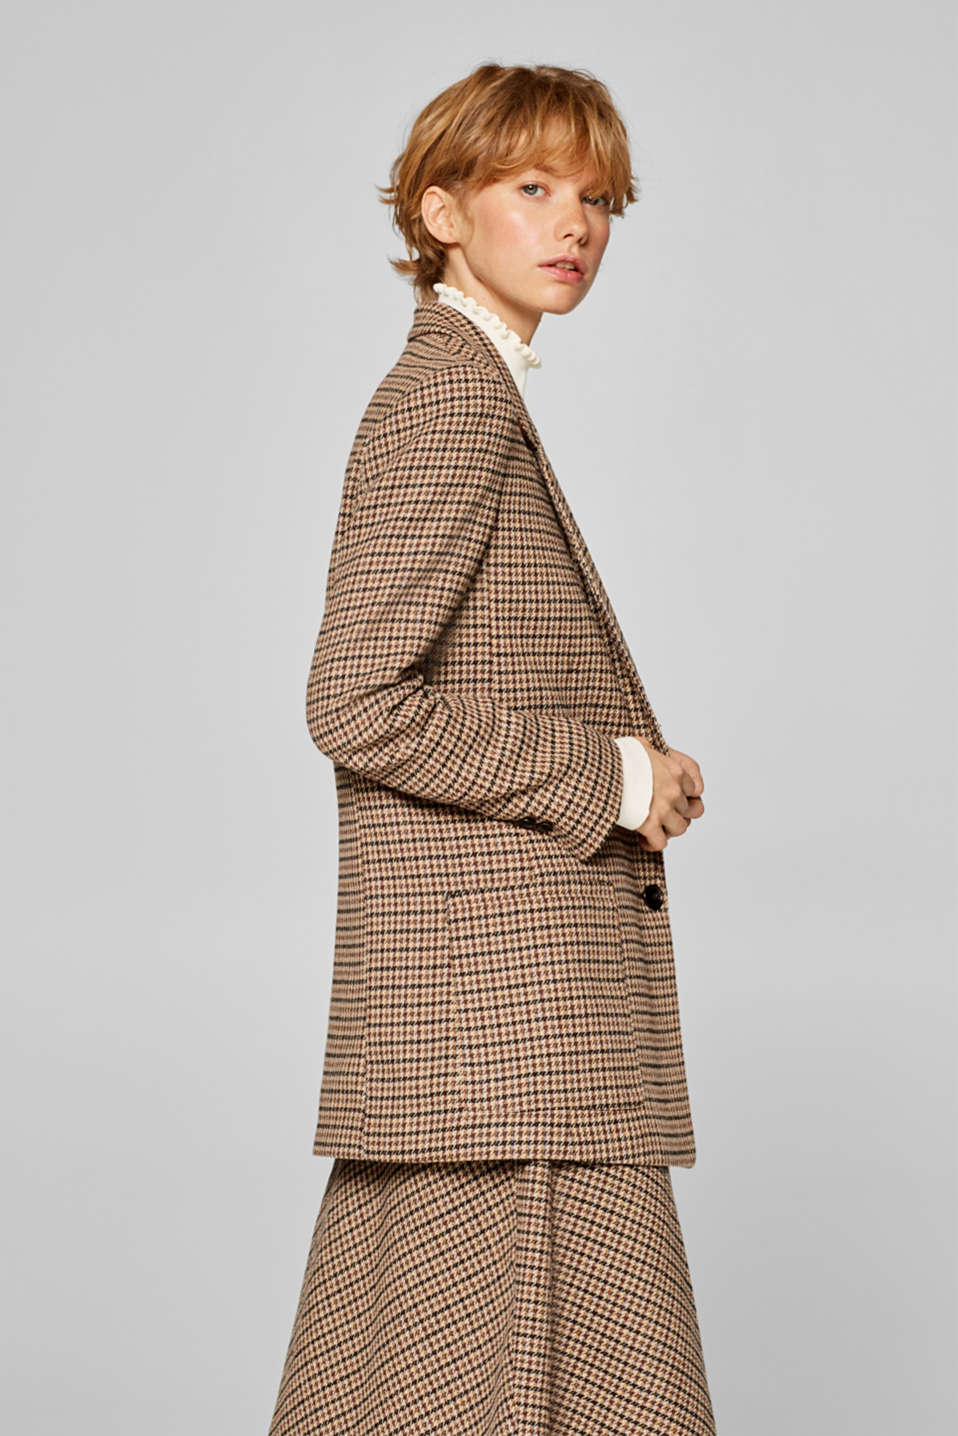 Esprit - With wool: casual check blazer with stretch for comfort